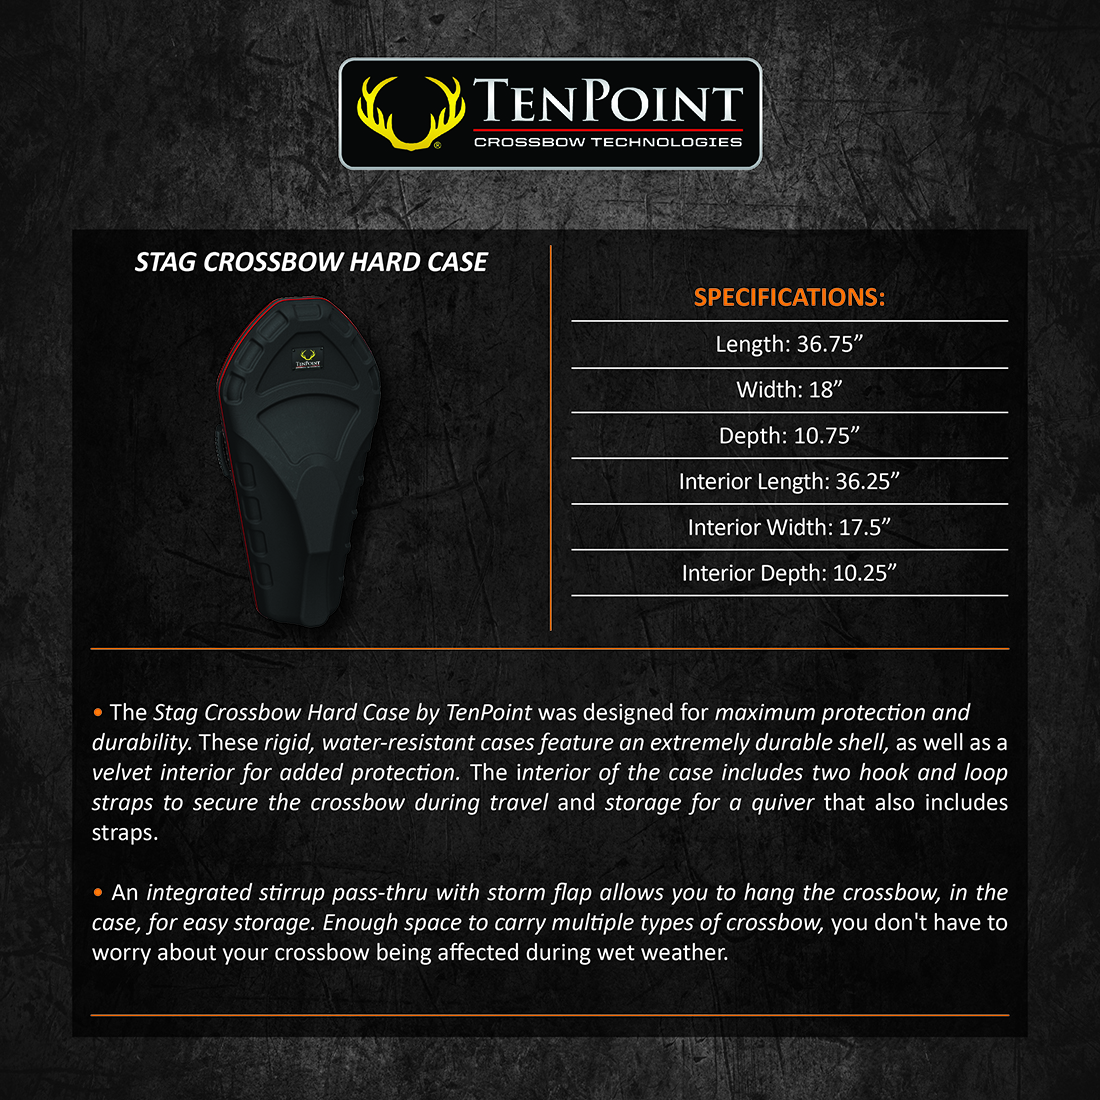 TenPoint_STAG_Hardcase_Product_Description